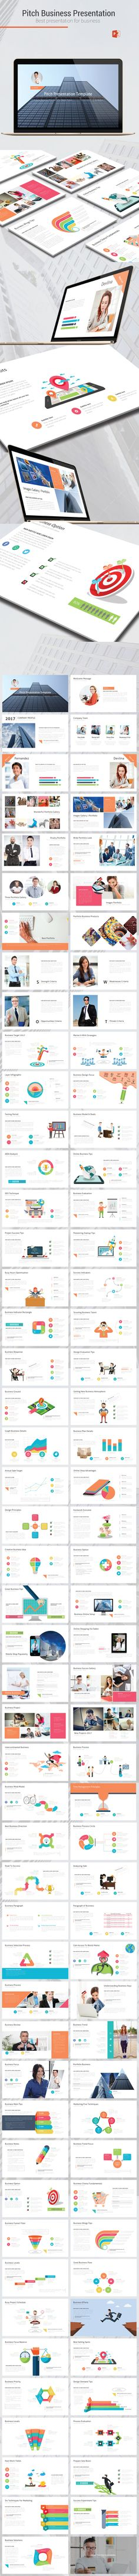 Pitch Business Presentation - Pitch Deck #PowerPoint Templates Download here:  https://graphicriver.net/item/pitch-business-presentation/19392952?ref=alena994